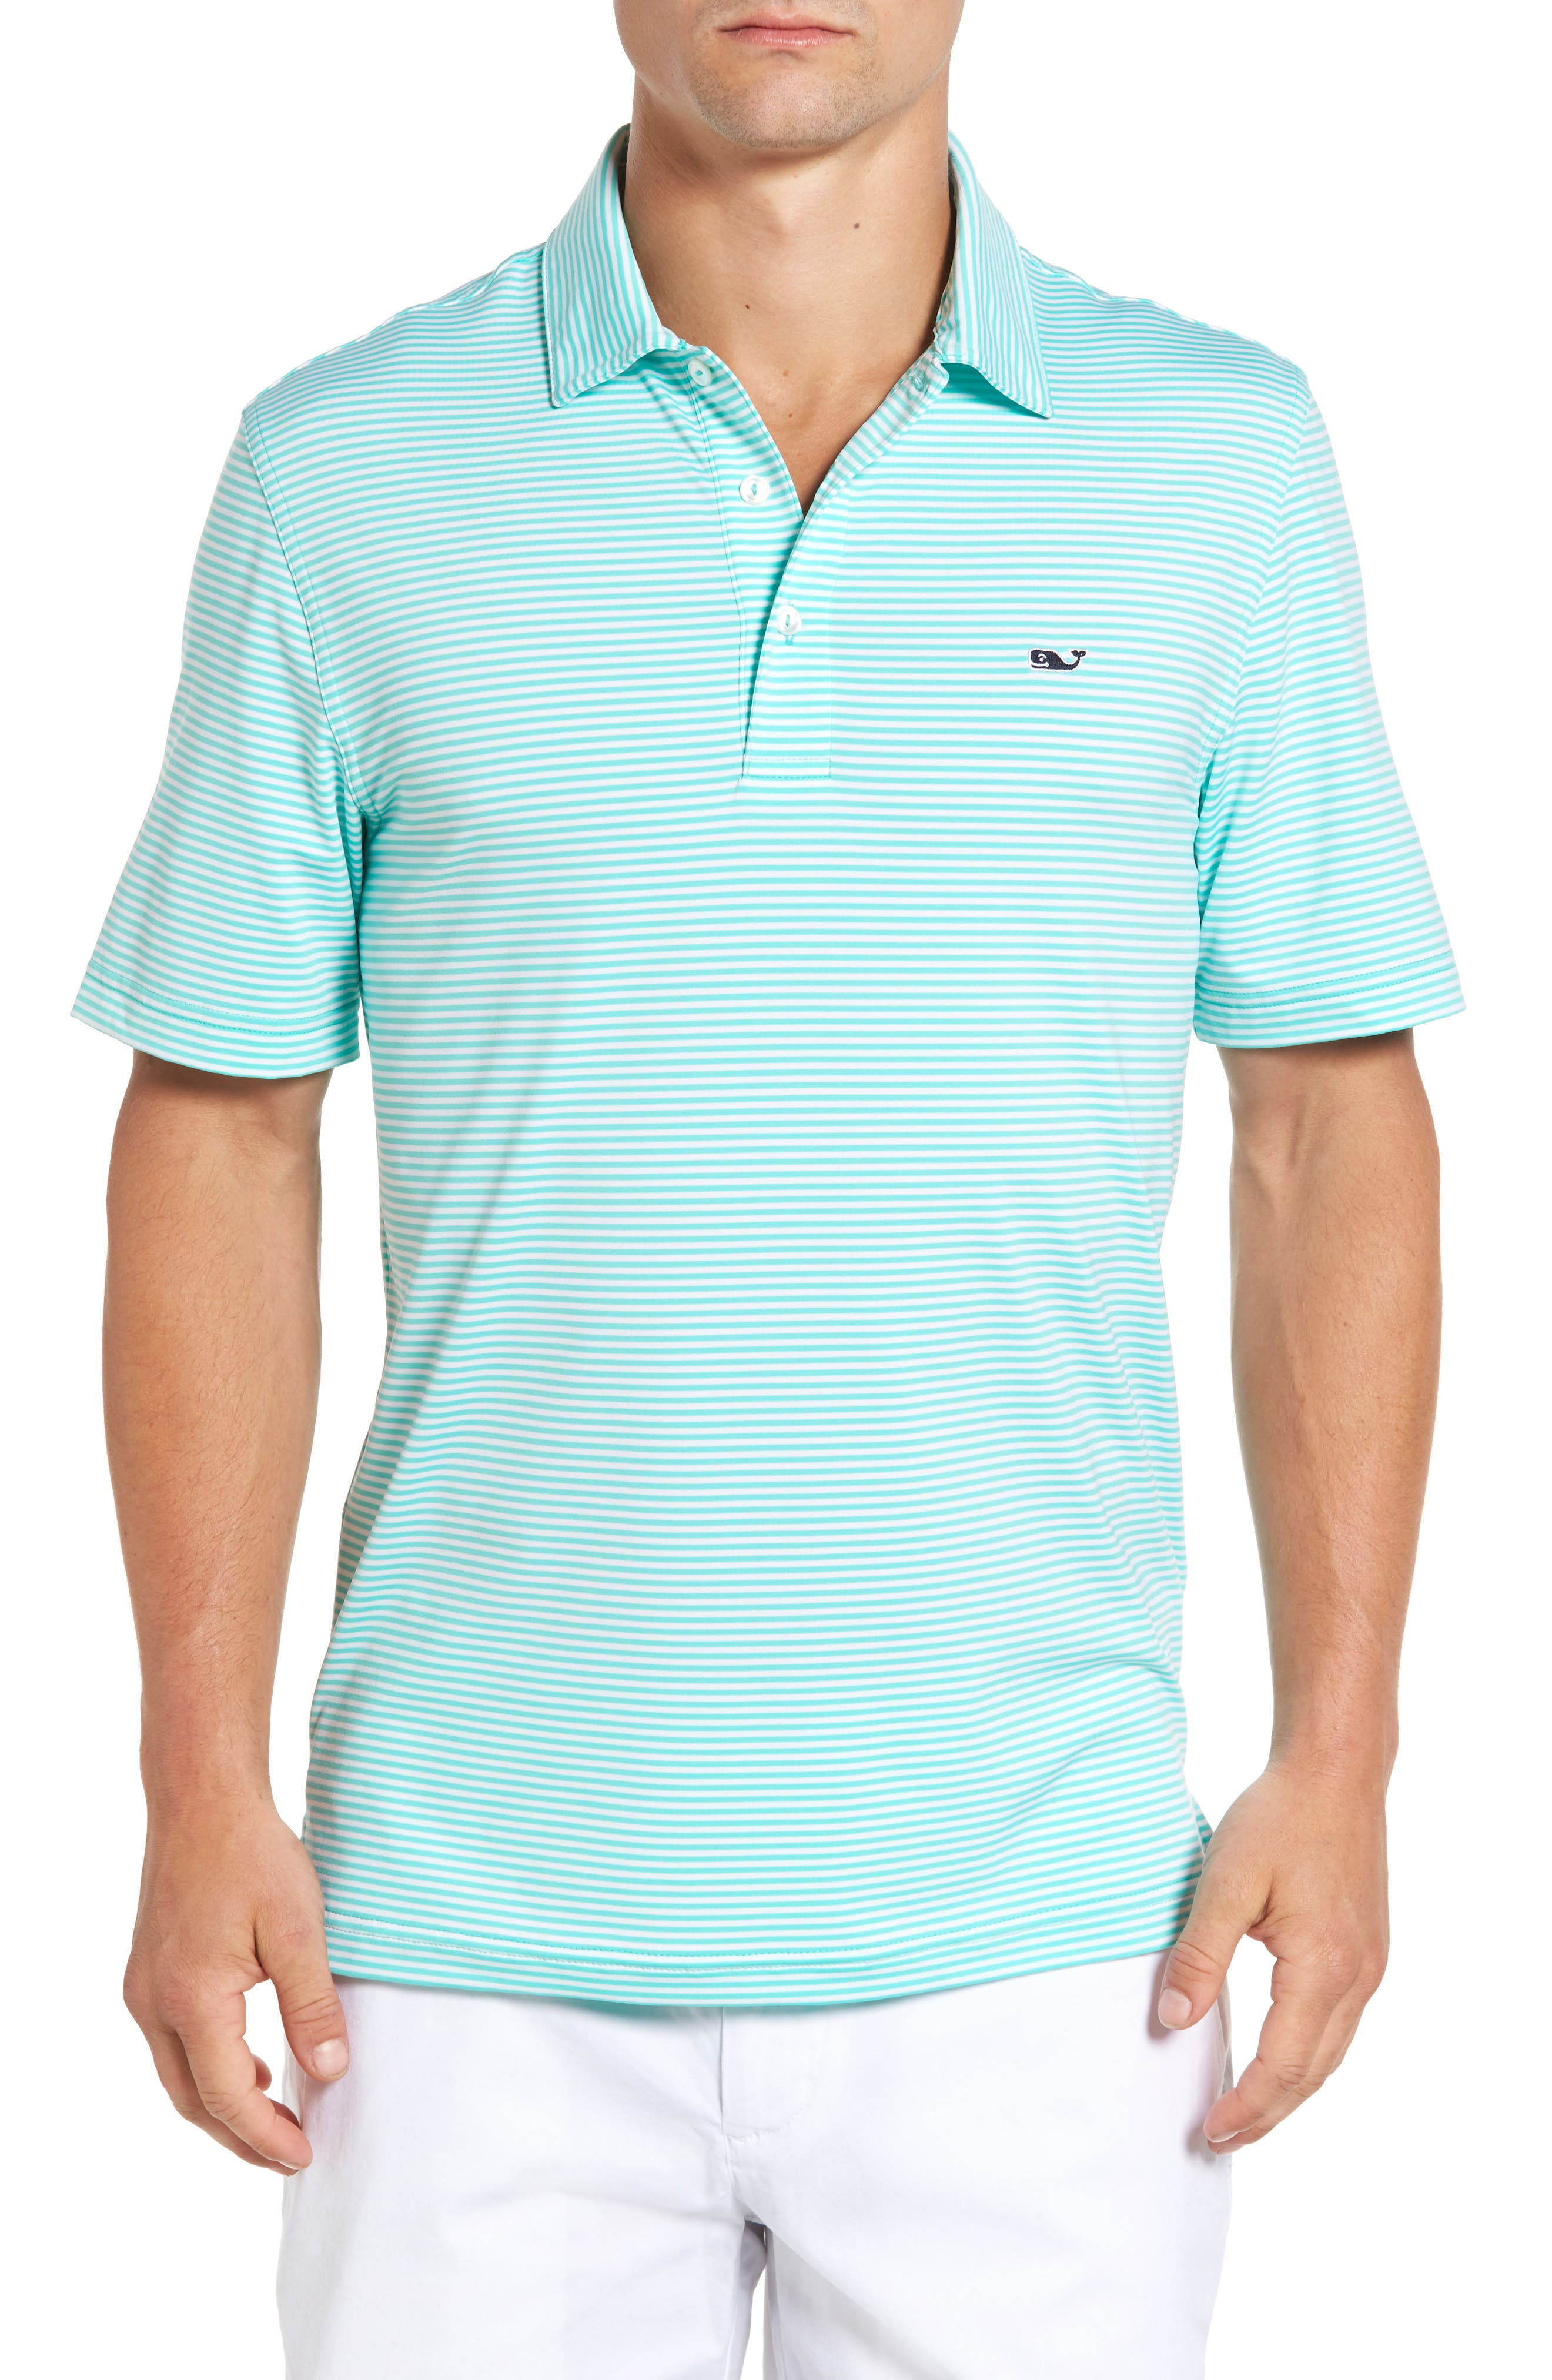 Vineyard Vines 'Cliff' Stretch Performance Golf Polo